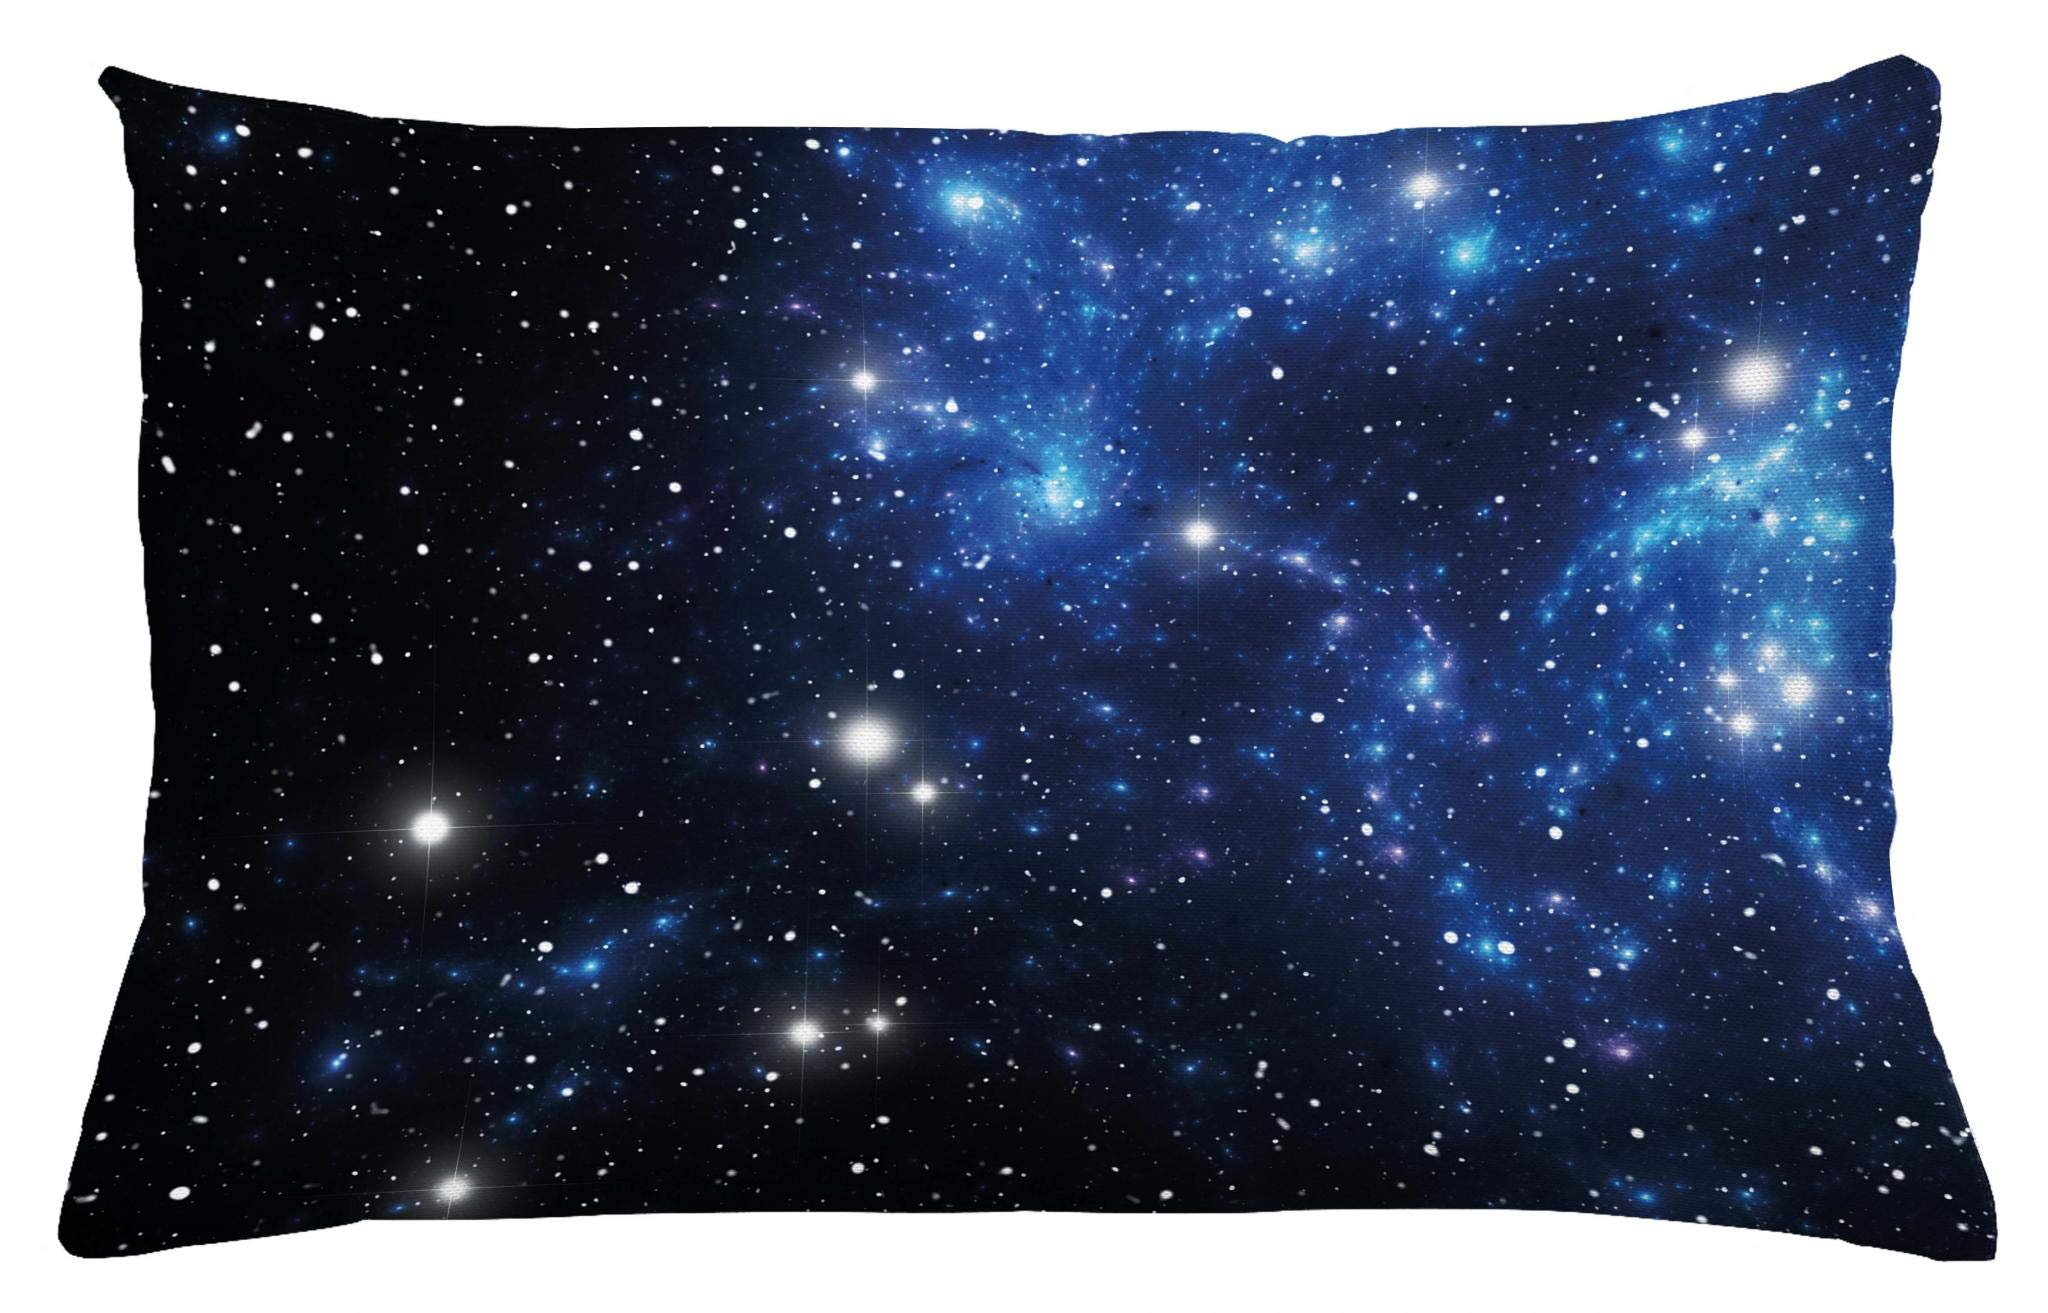 Ambesonne Constellation Throw Pillow Cushion Cover, Outer Space Star Nebula Astral Cluster Astronomy Theme Galaxy Mystery, Decorative Accent Pillow Case, 26 W X 16 L Inches, Blue Black White